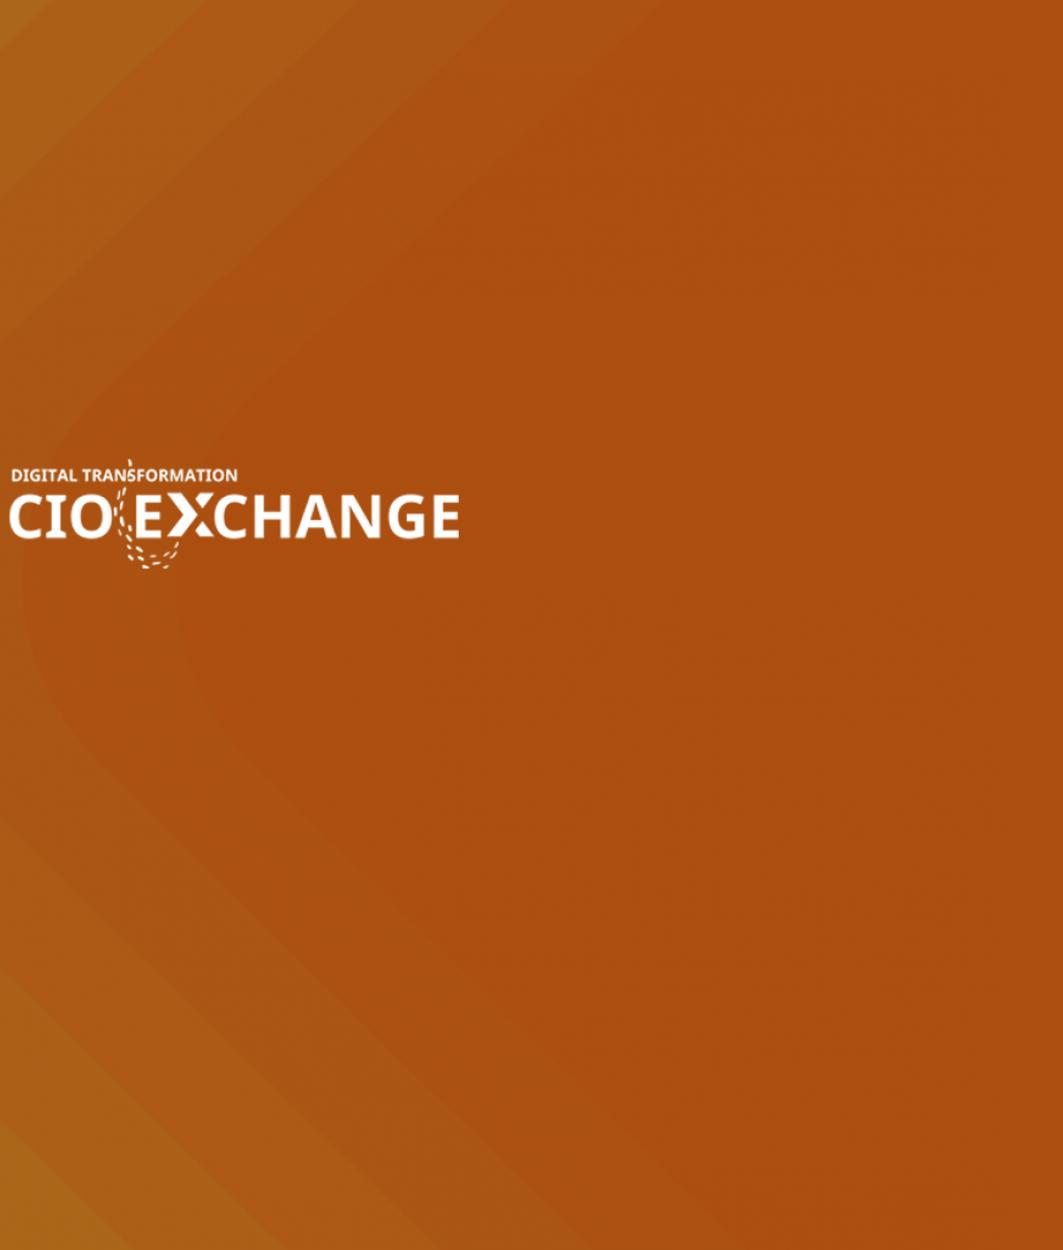 Digital Transformation CIO Exchange